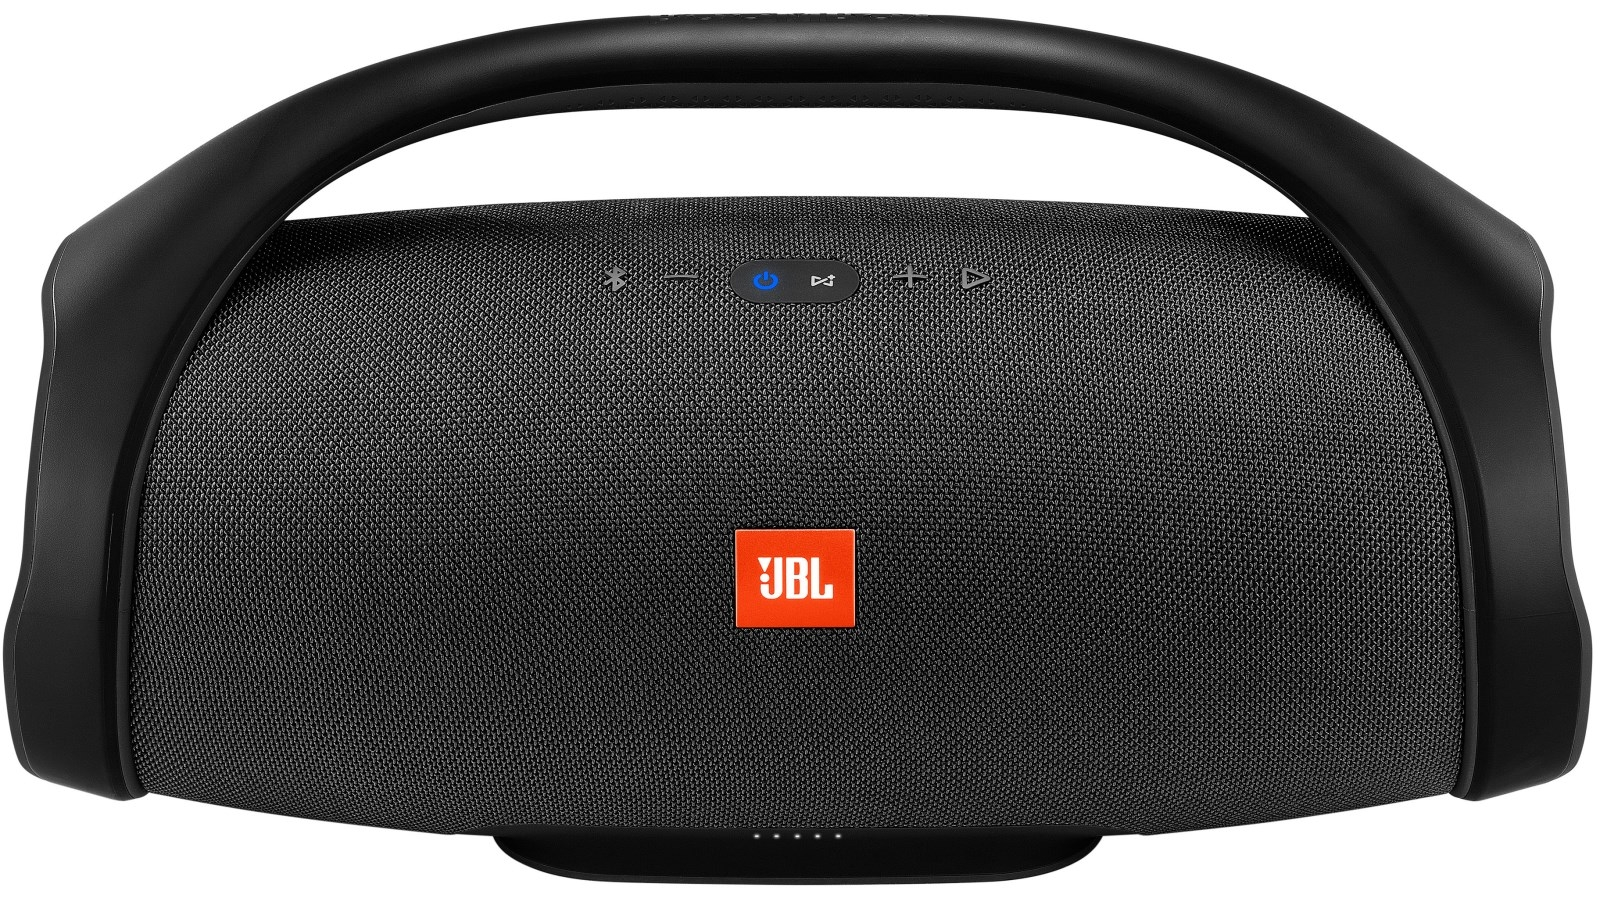 Jbl Bass Jbl Boombox Portable Bluetooth Speaker